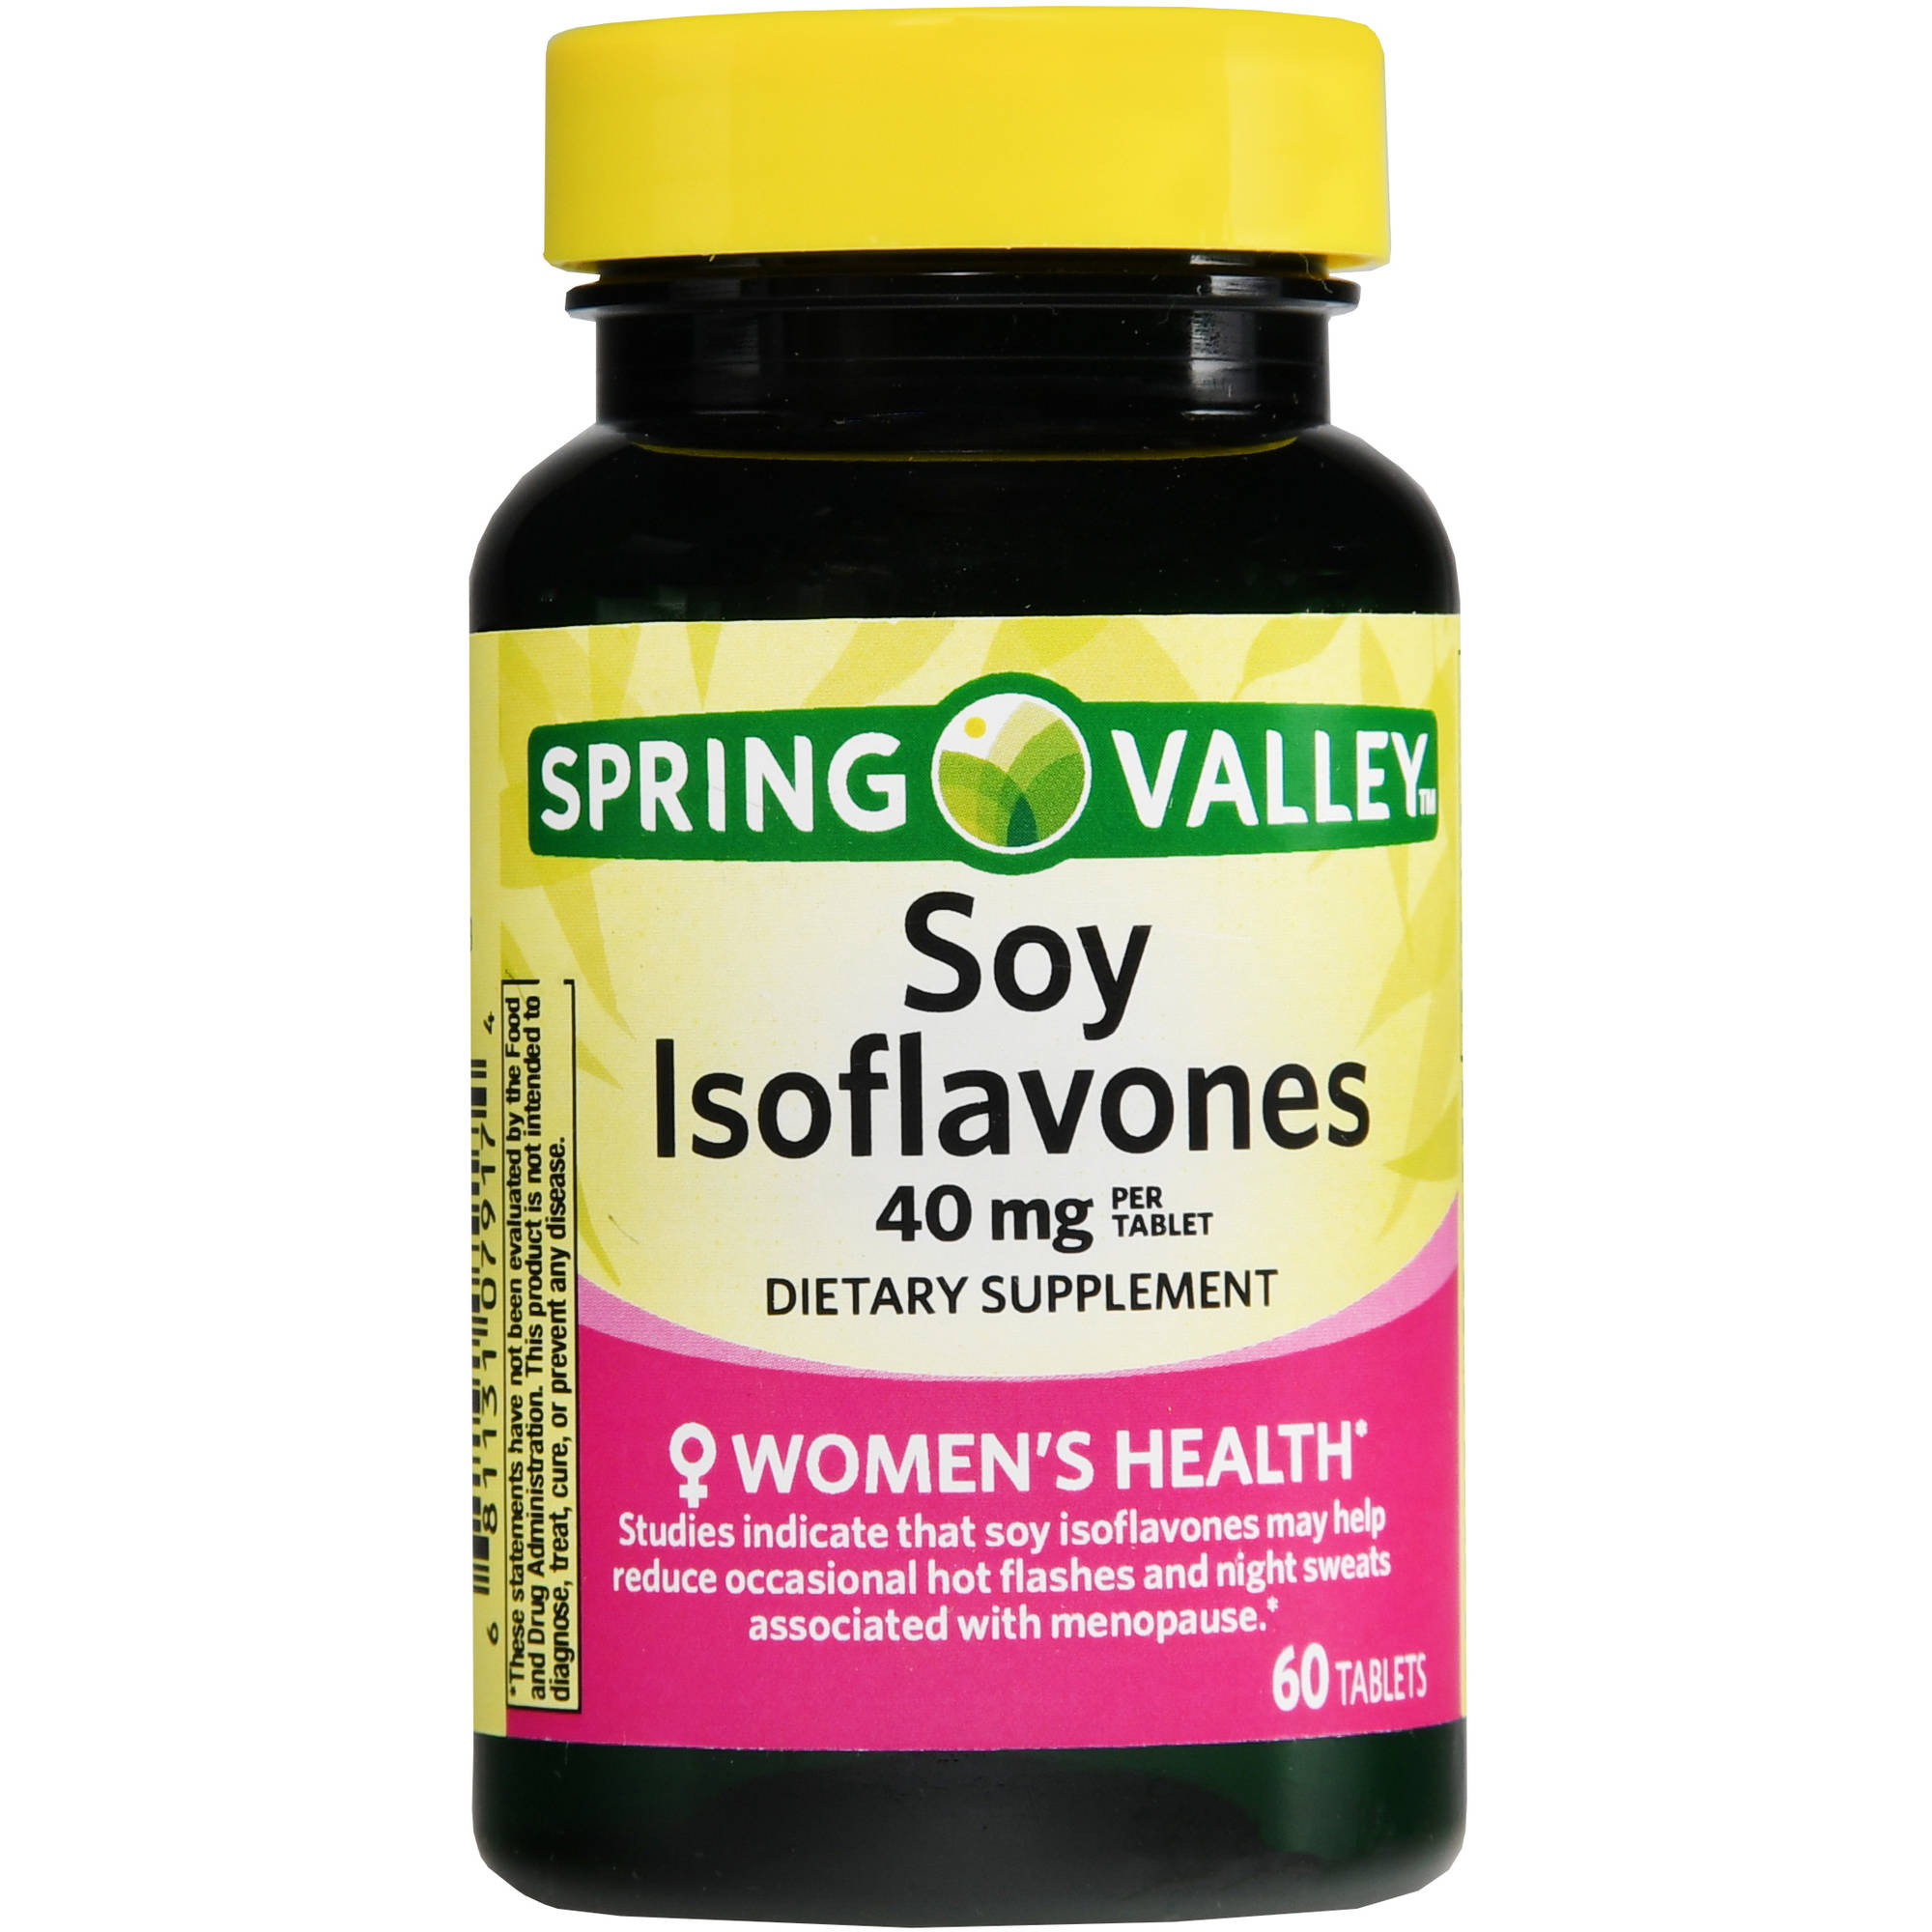 Spring Valley Soy Isoflavones Tablets, 40 mg, 60 count